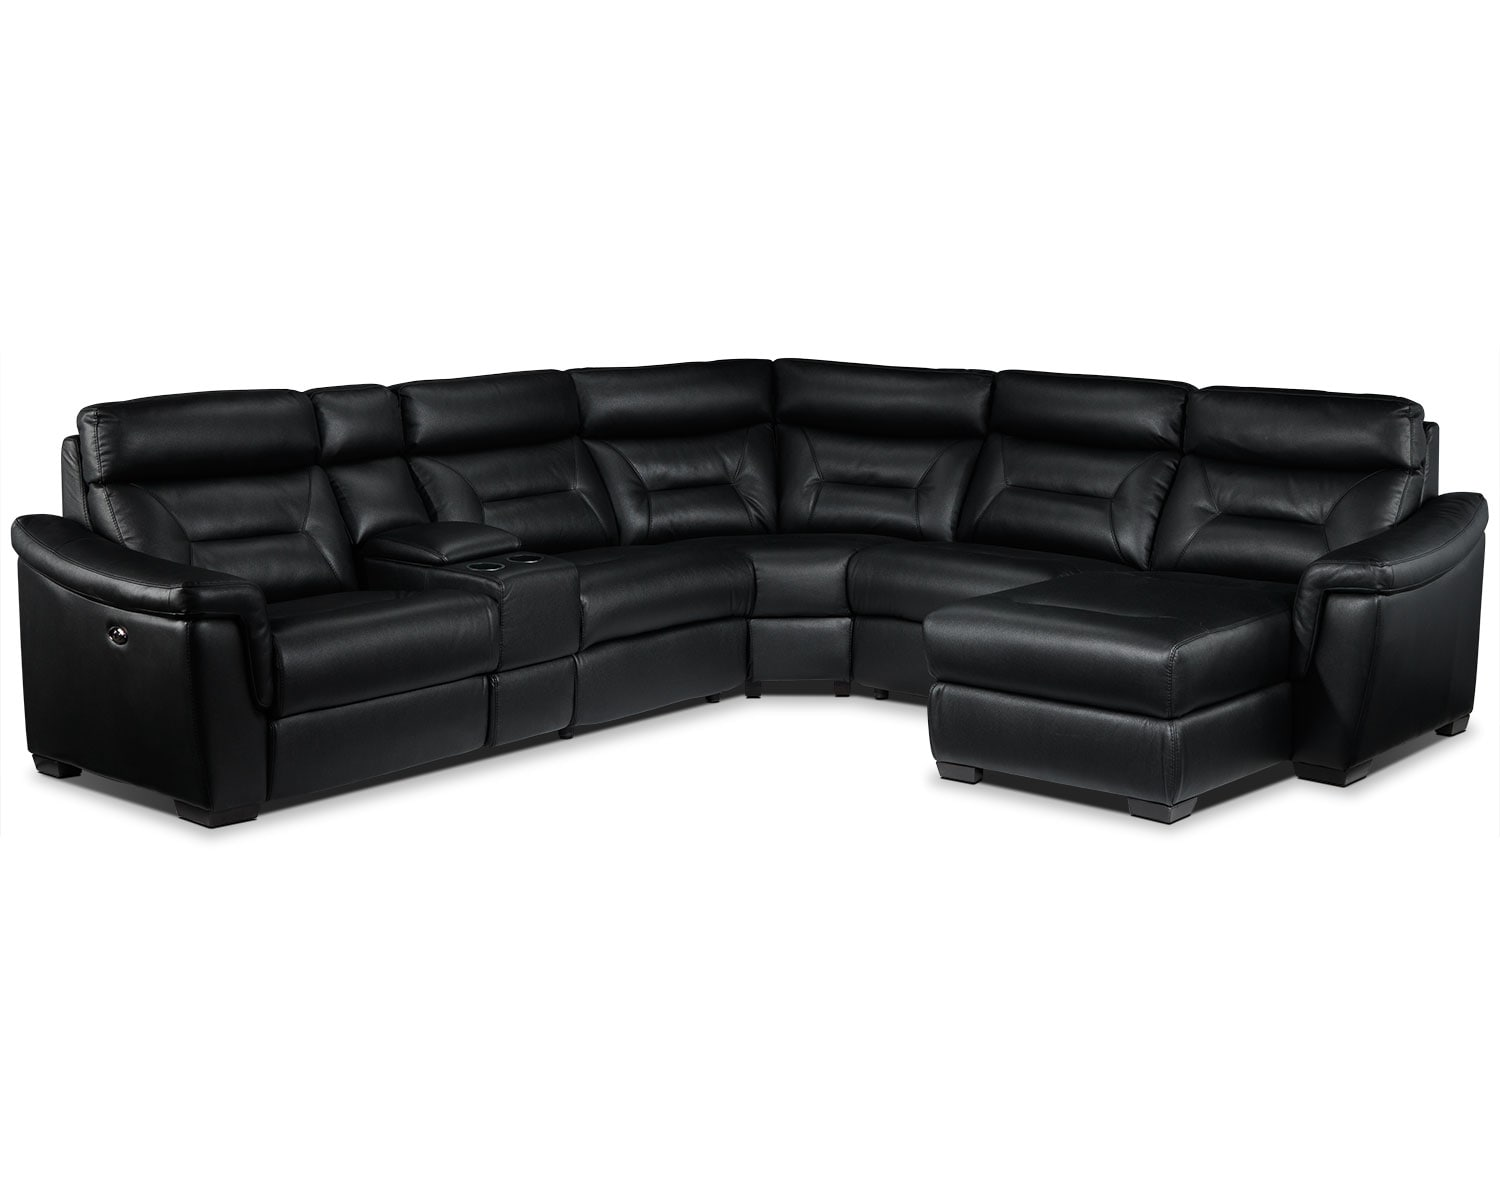 The Wexler Collection - Black